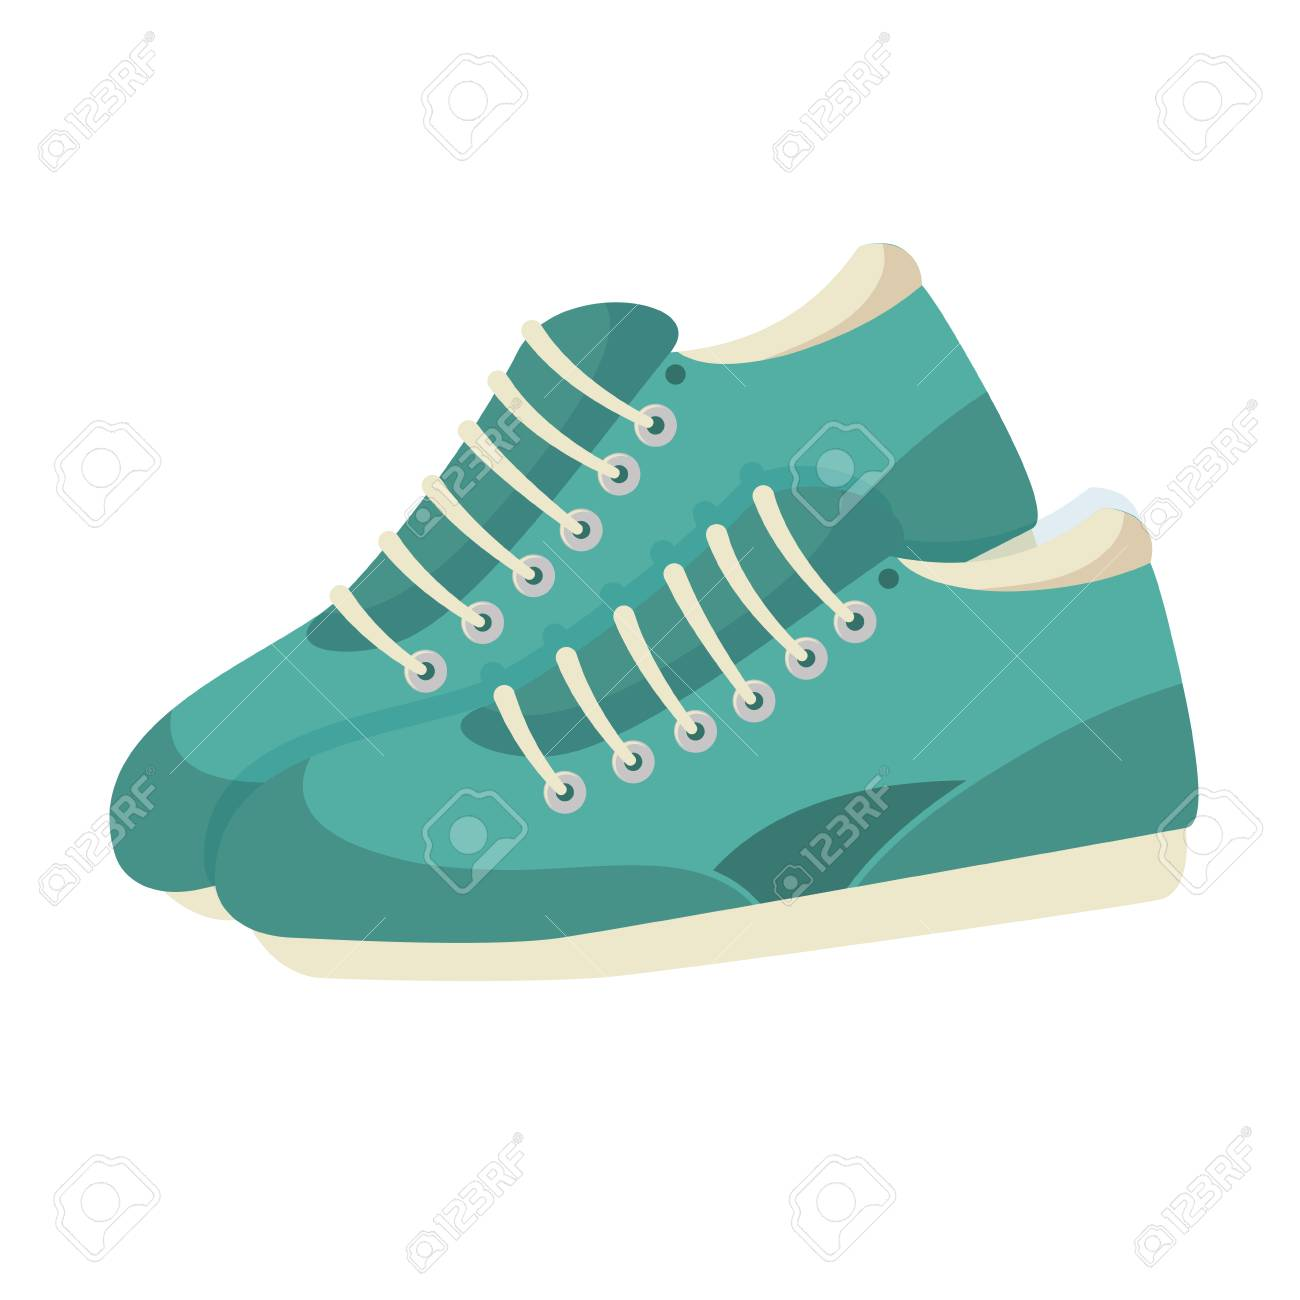 tennis shoes isolated icon vector illustration design - 78358962